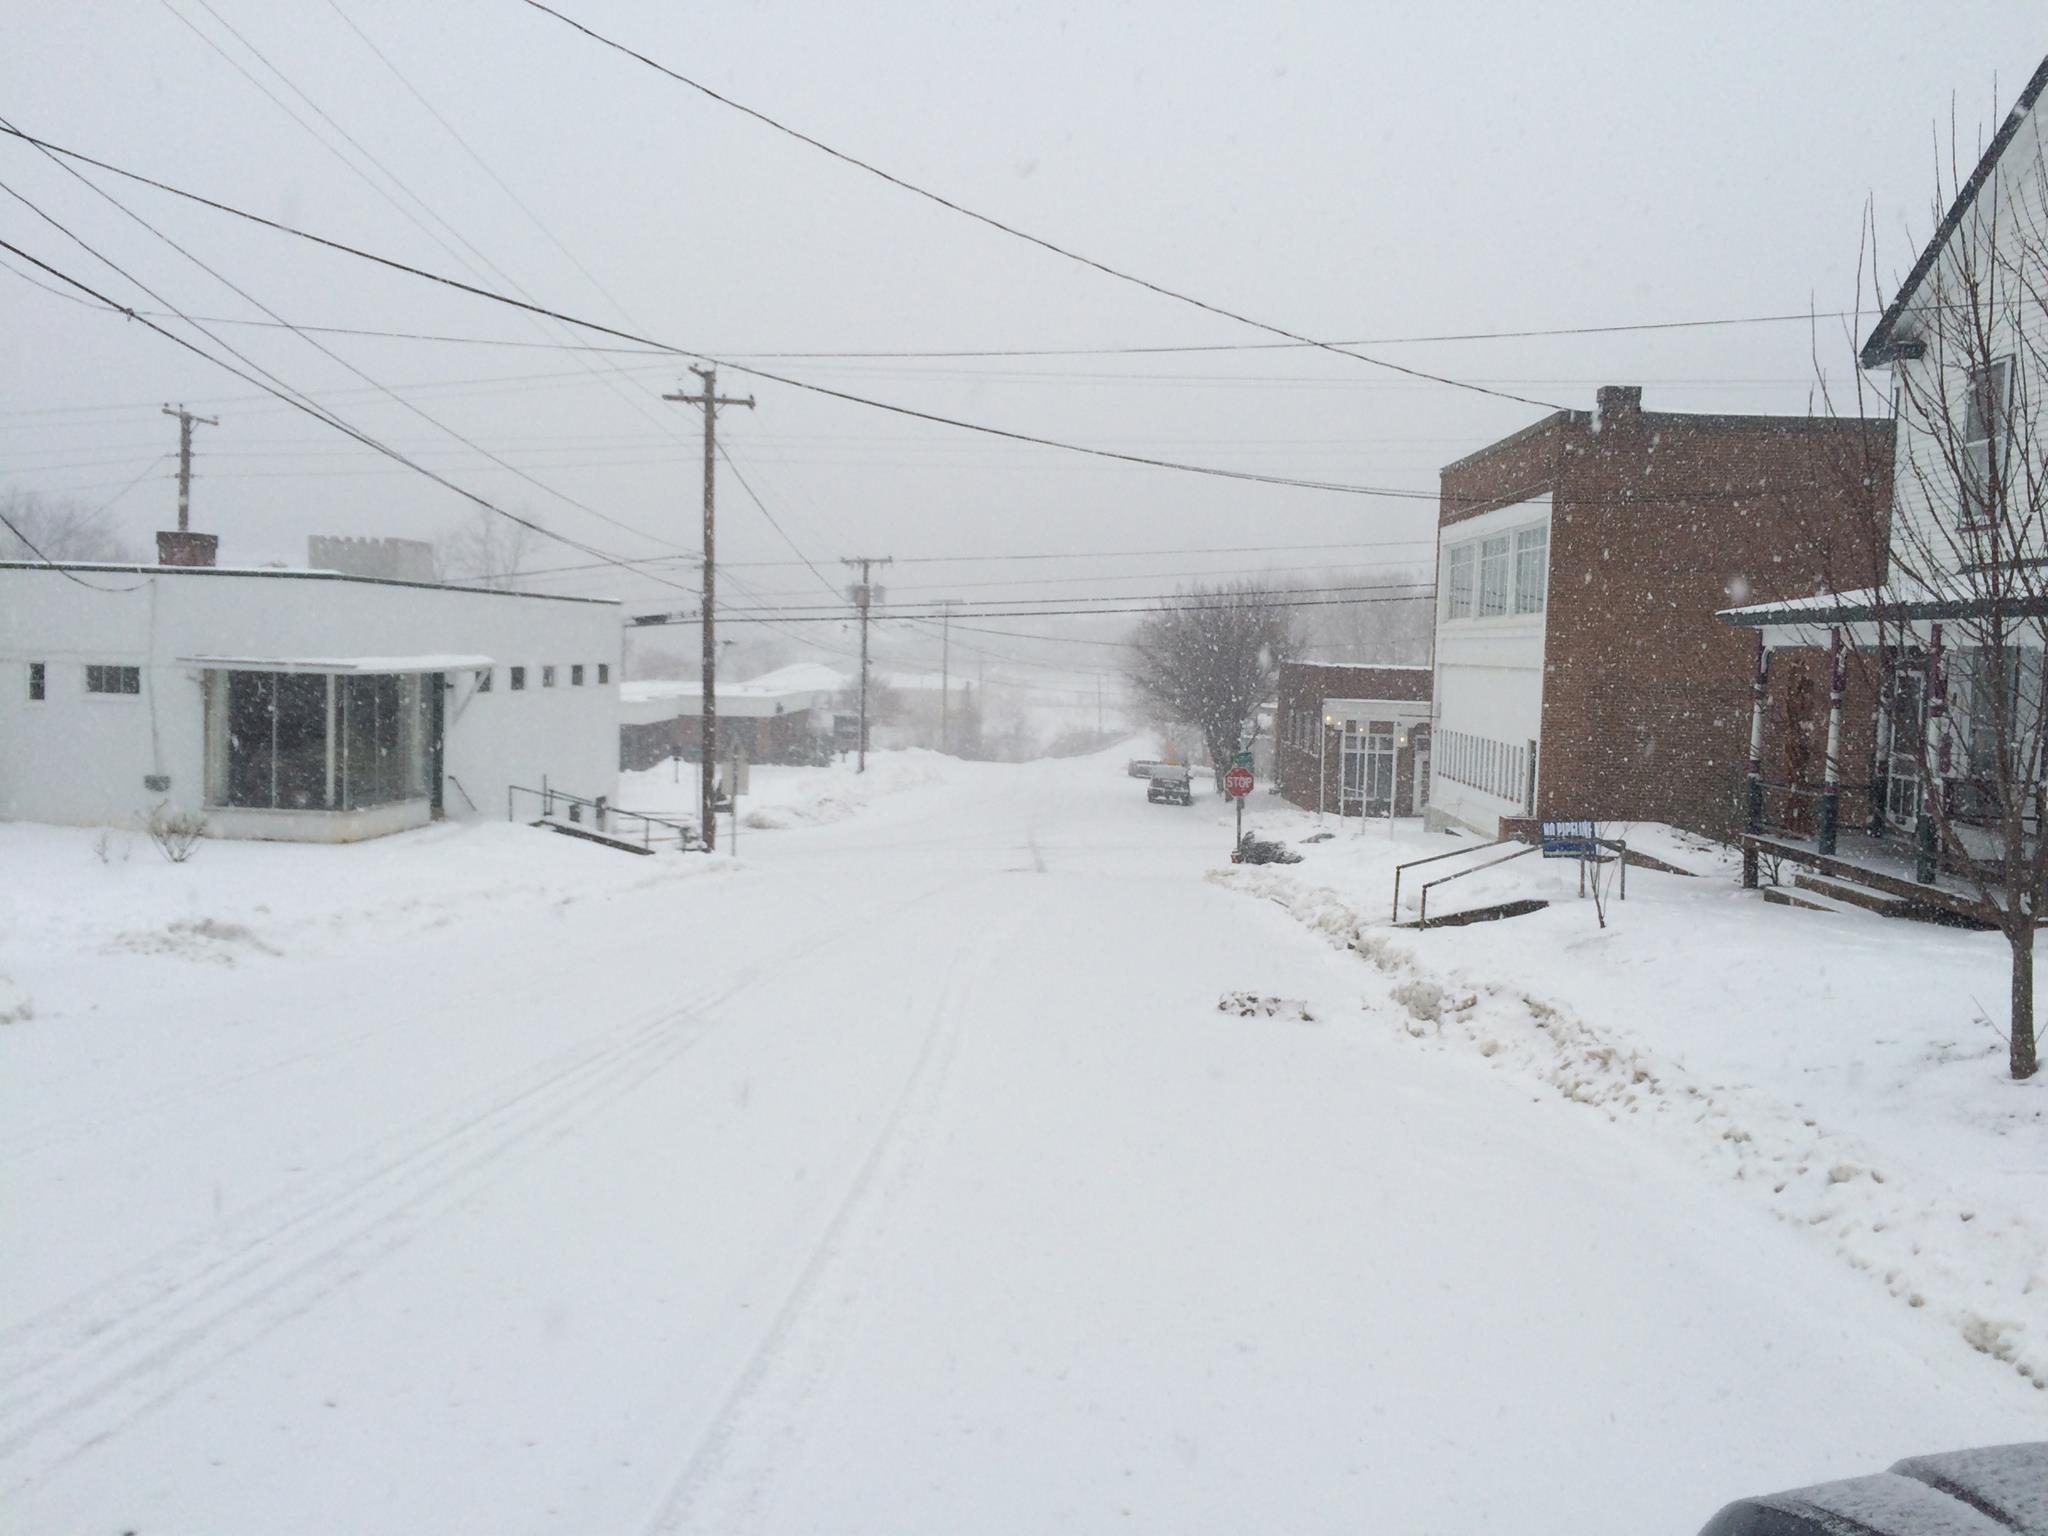 Round Two Of Winter Arrives In The Blue Ridge - Heavy Snow Hits